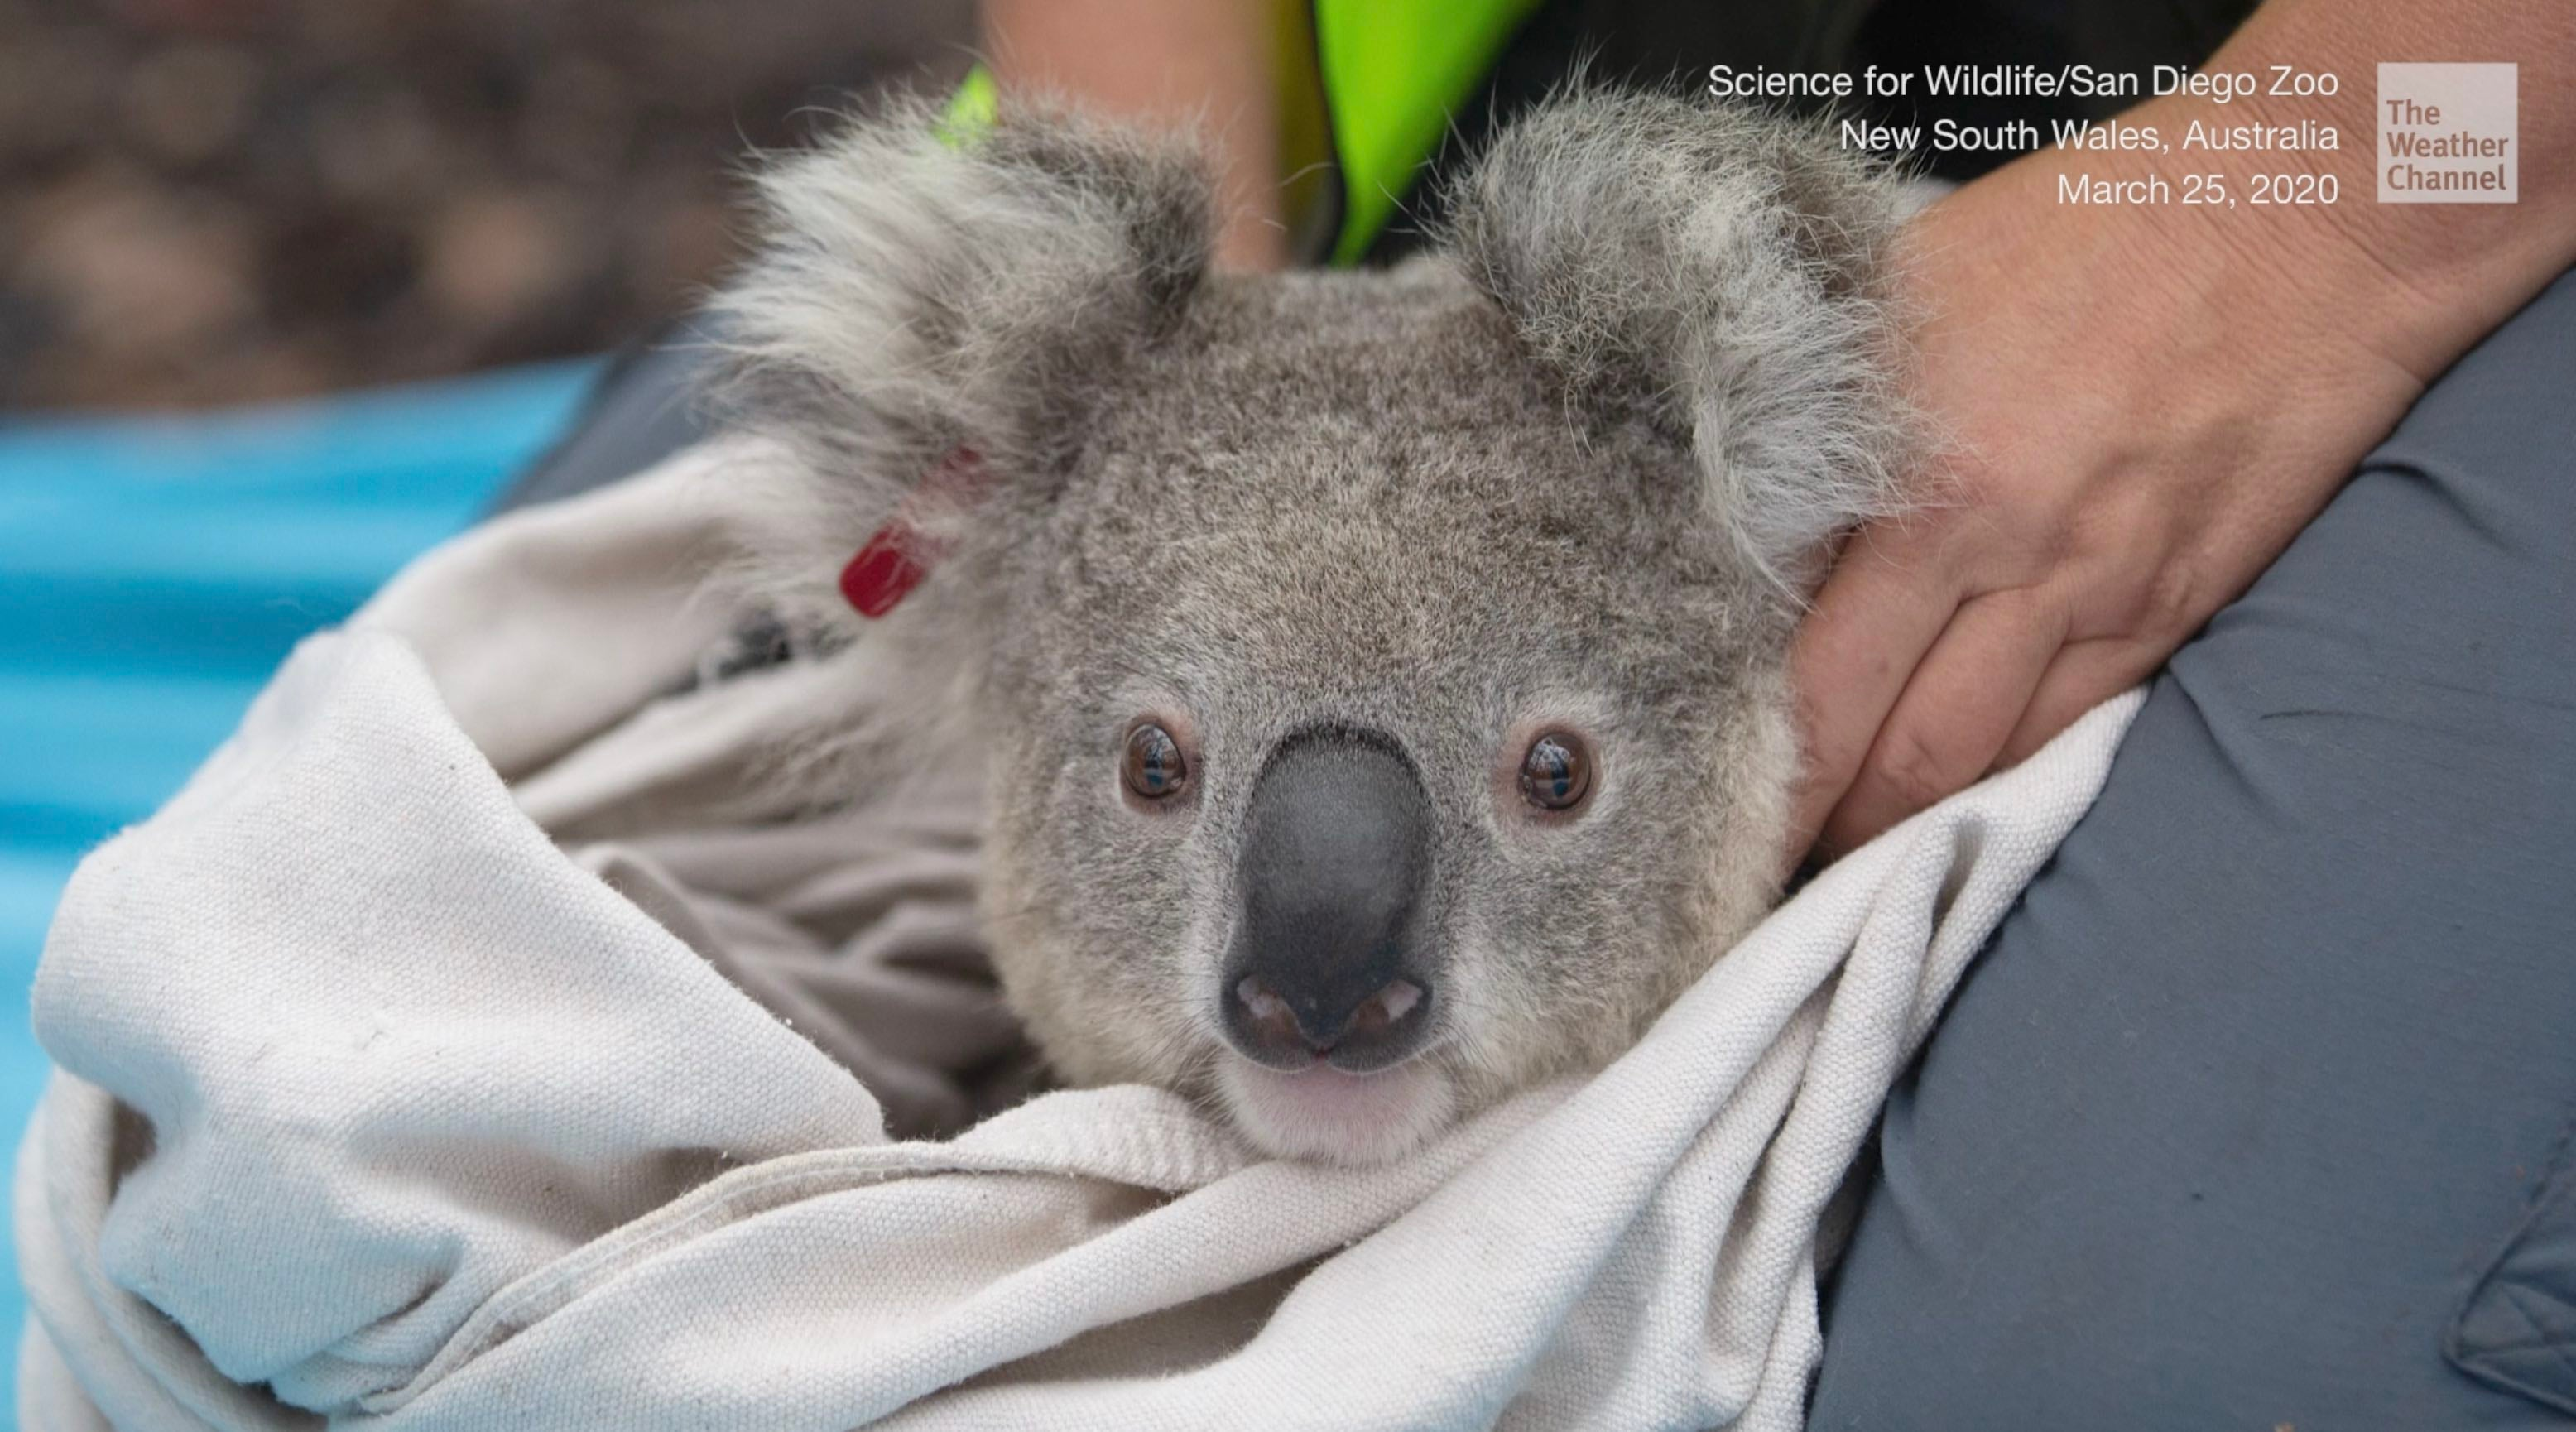 Some of the koalas rescued from Australia's bushfires have returned home to the eucalyptus forest at Kanangra-Boyd National Park in New South Wales.